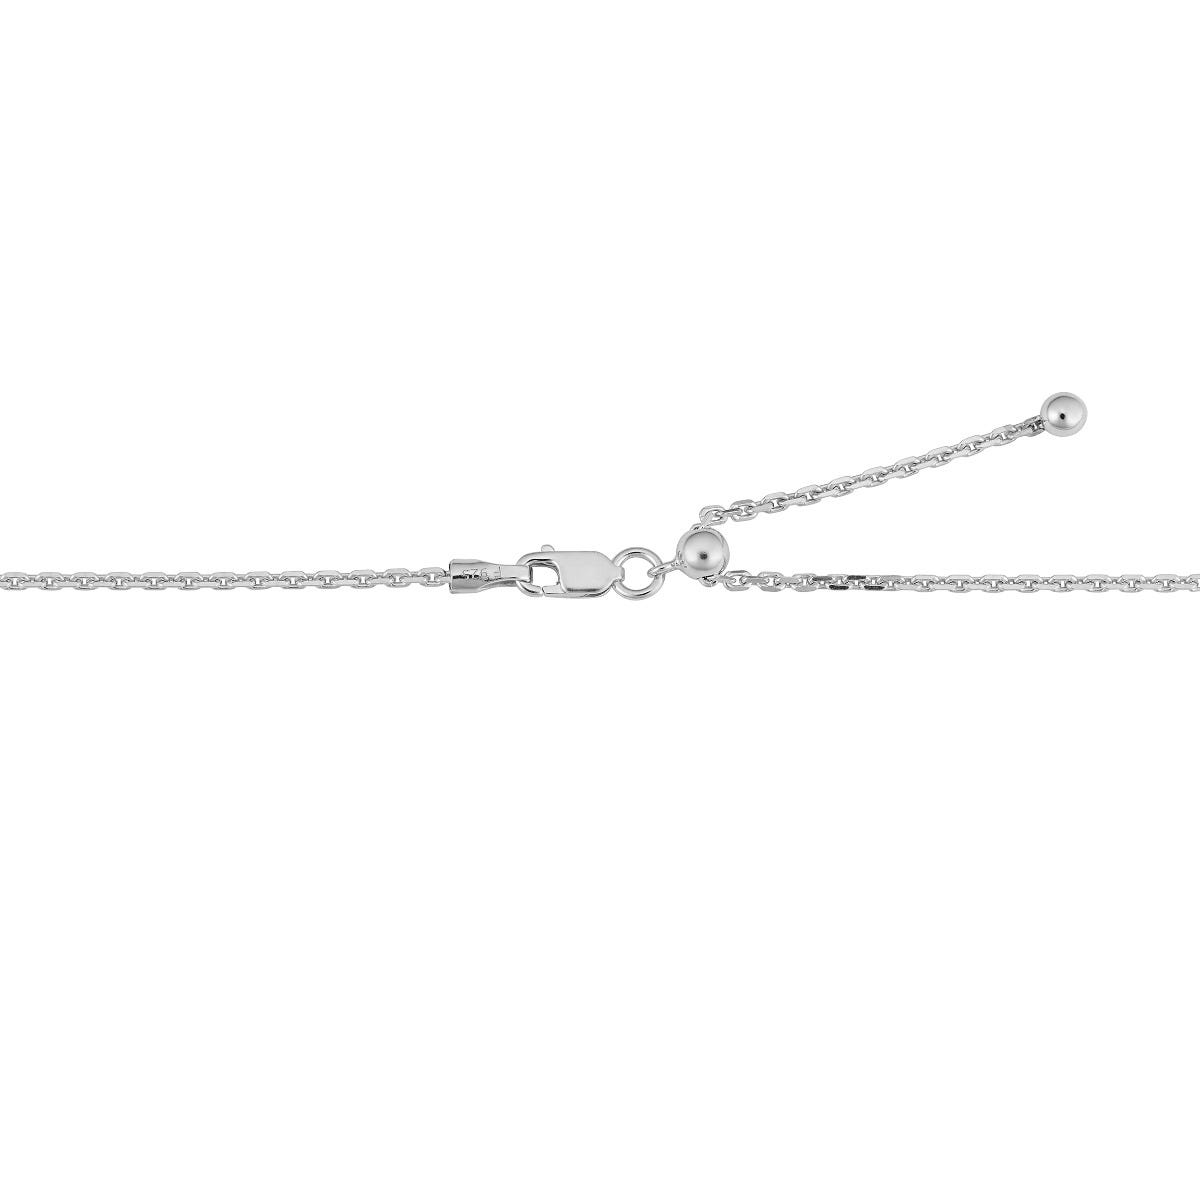 Multistrand Adjustable Necklace in Sterling Silver